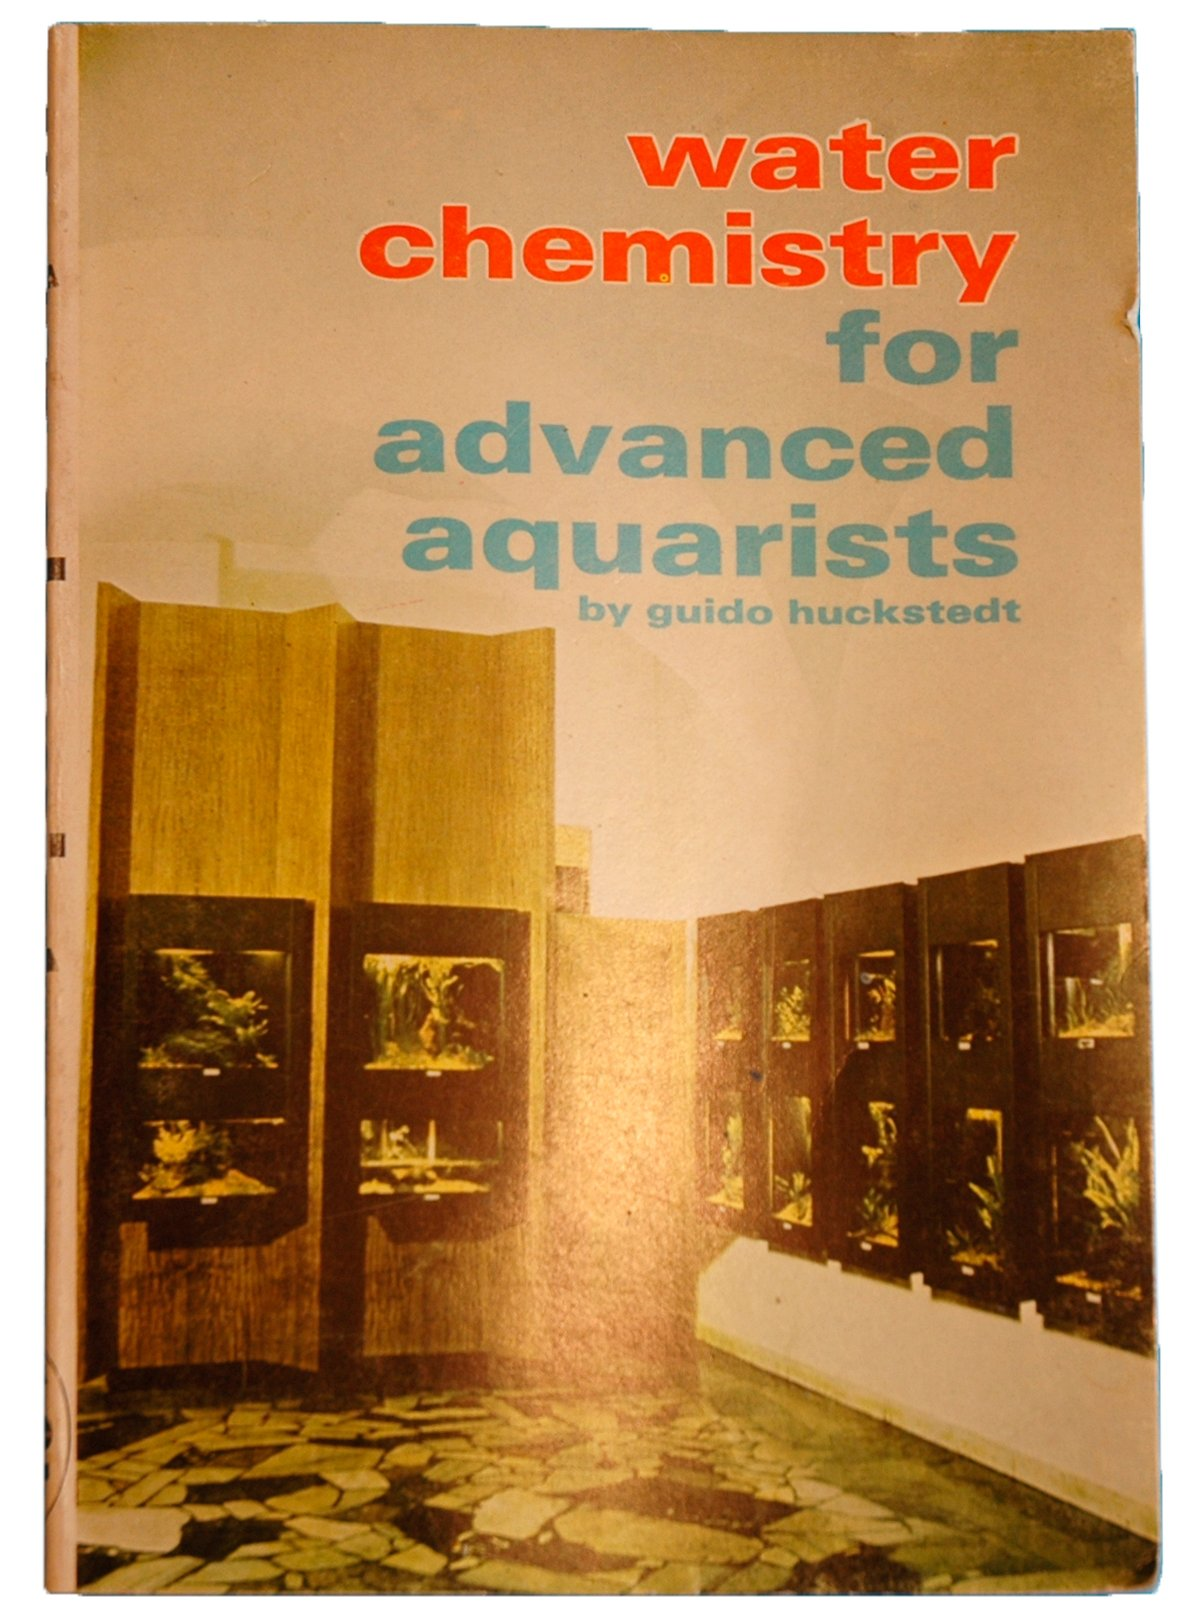 Water Chemistry for Advanced Aquarists (English and German Edition)